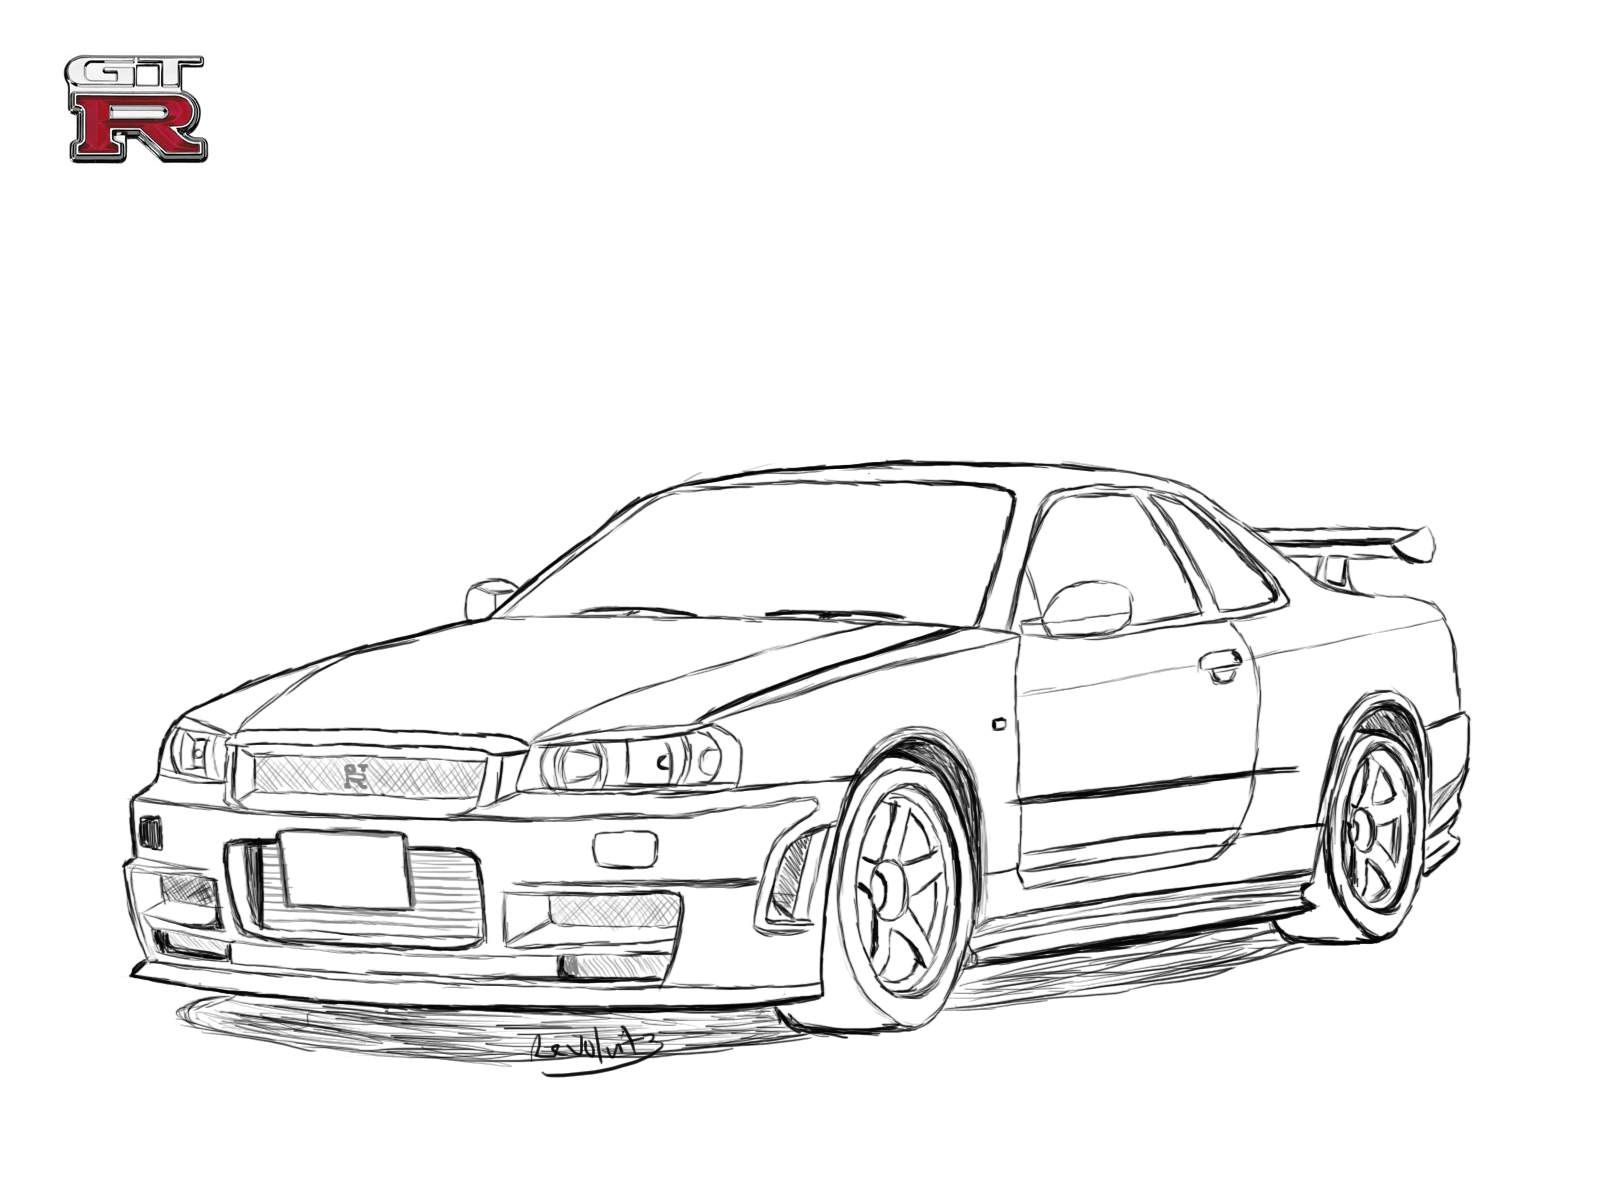 Nissan Skyline Gtr R34 Drawing